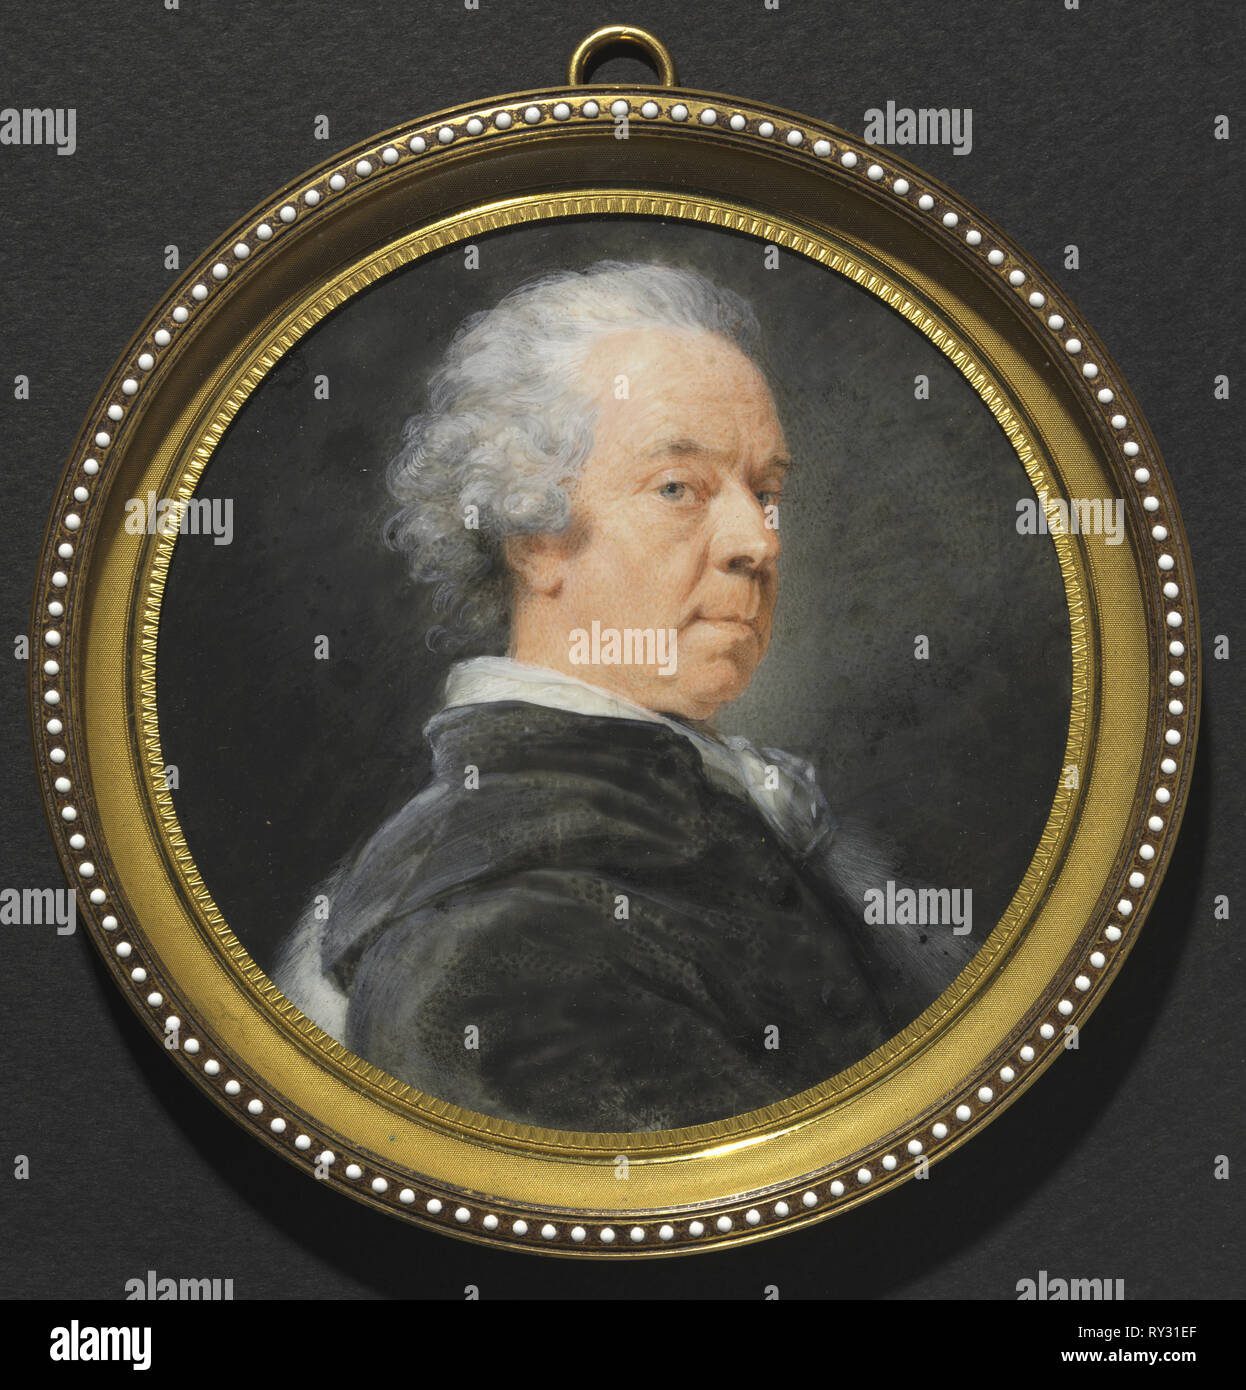 Portrait of Ivan Grigorevich, Count Chernyshev, c. 1785. Heinrich Friedrich Füger (German, 1751-1818). Watercolor on ivory in a later gilt metal and enamel frame; diameter: 10.6 cm (4 3/16 in.); diameter of frame: 13.1 cm (5 3/16 in Stock Photo